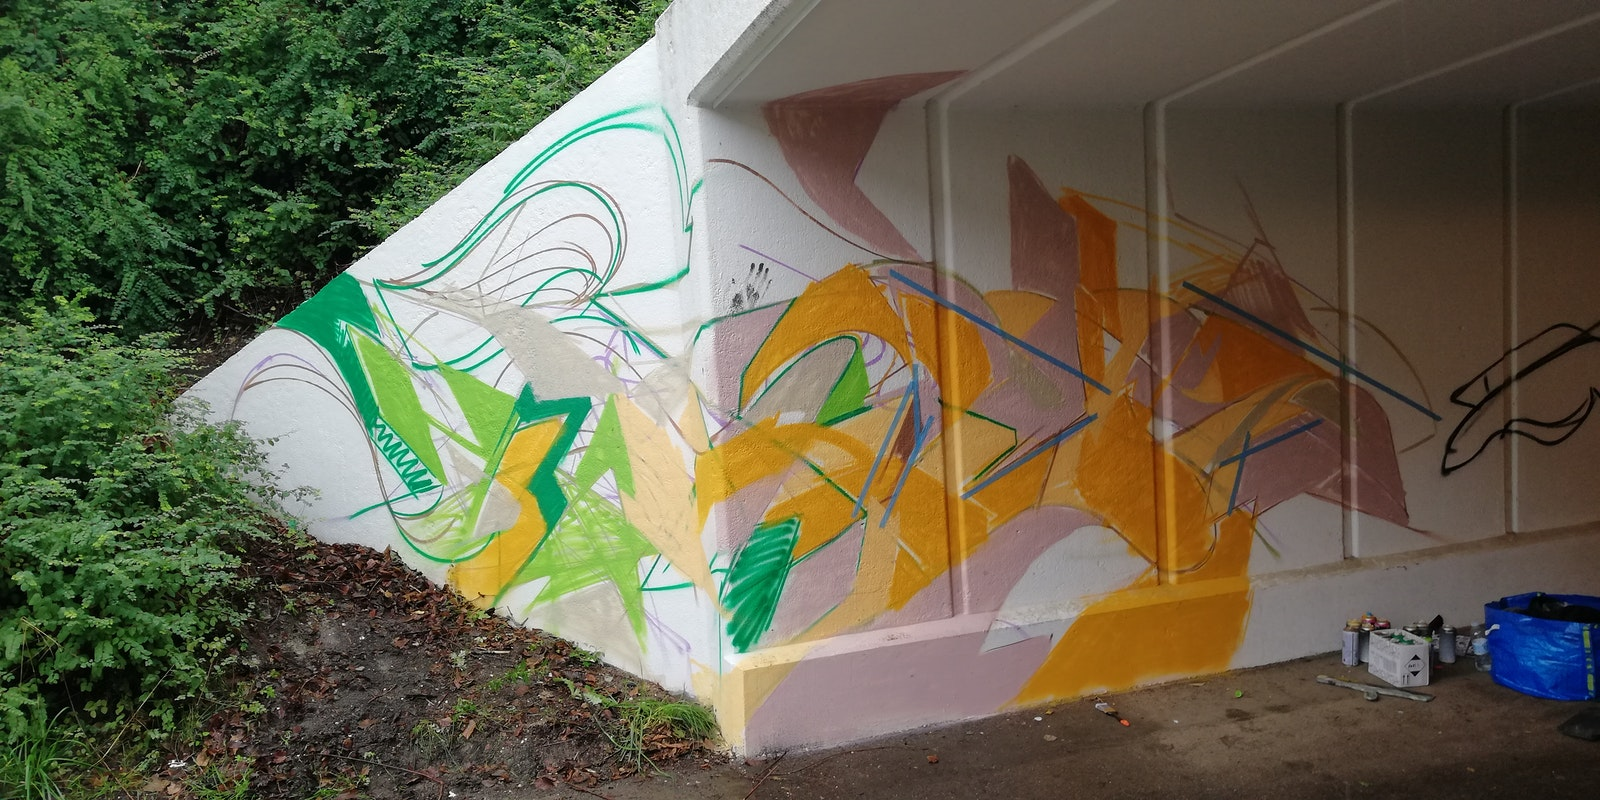 Mural by Mads Sonne Bremholm in a tunnel in Greve, created as part of Good Vibes Jam 2018